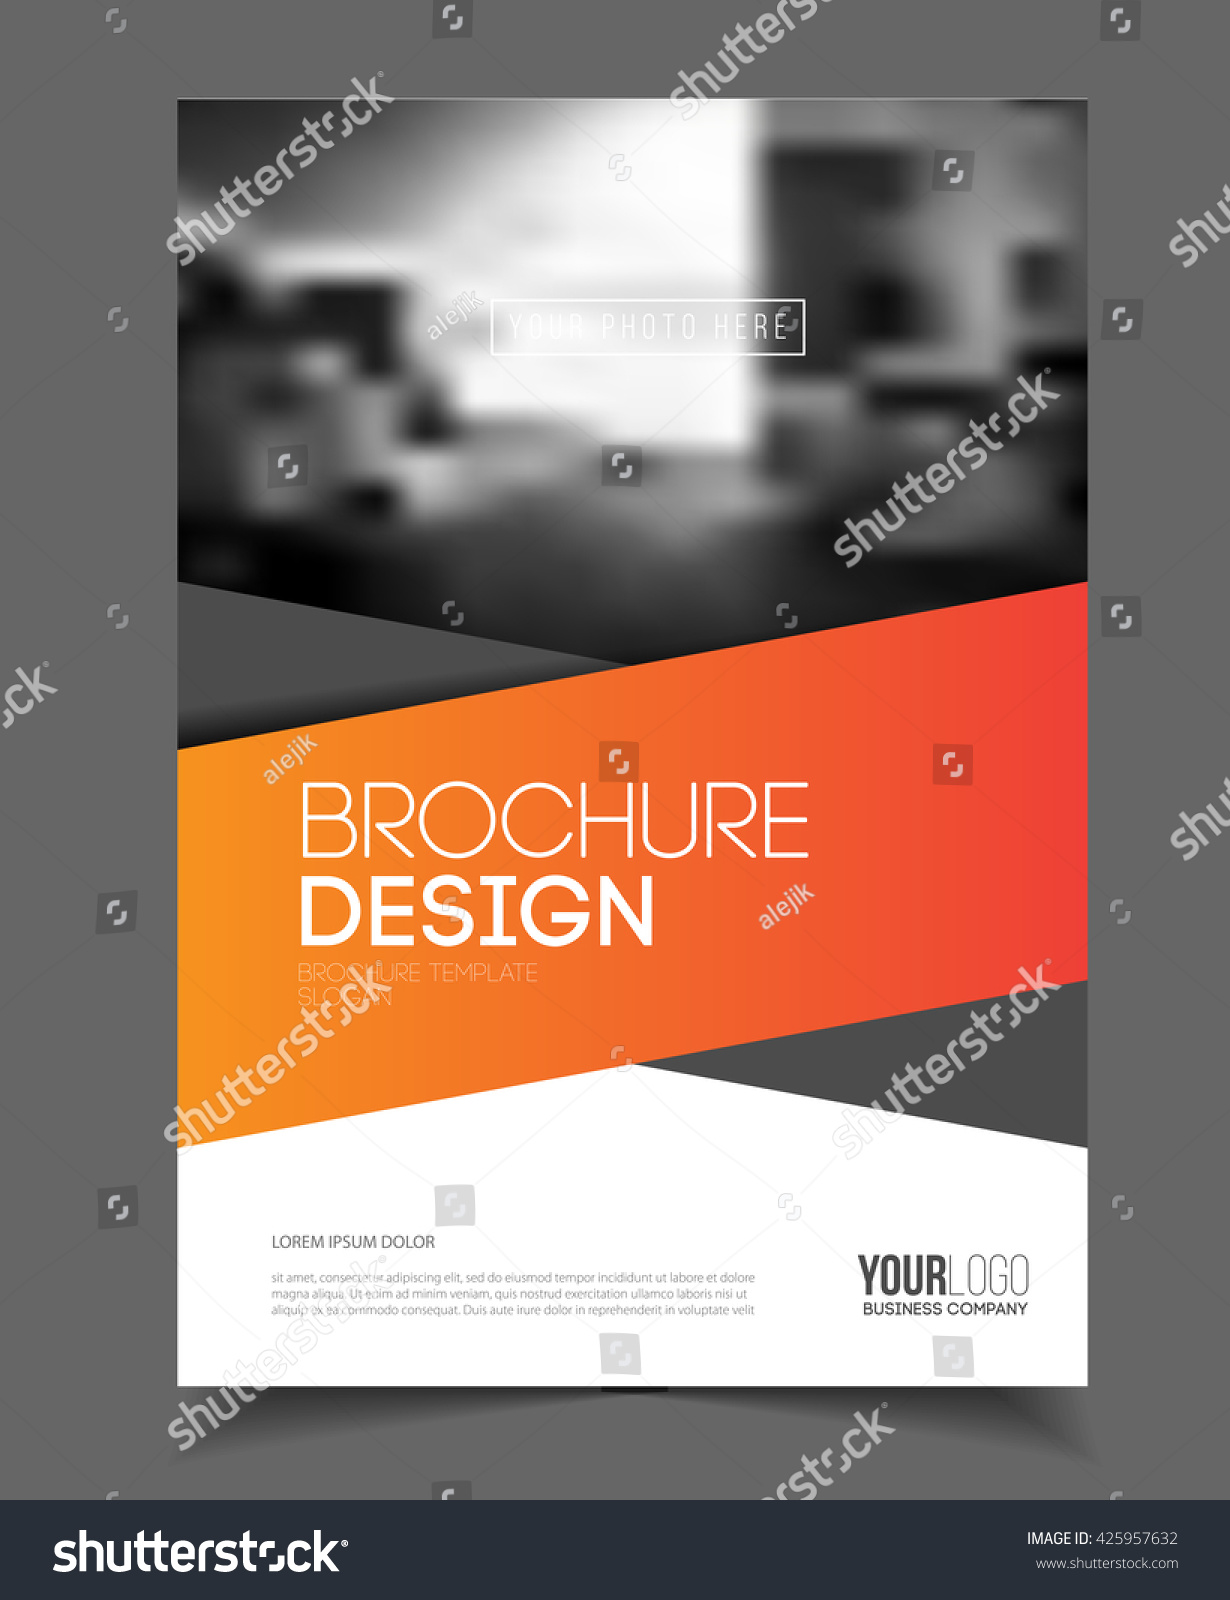 letterhead electronic template resume builder letterhead electronic template create a letterhead template in microsoft word business brochure design annual report vector